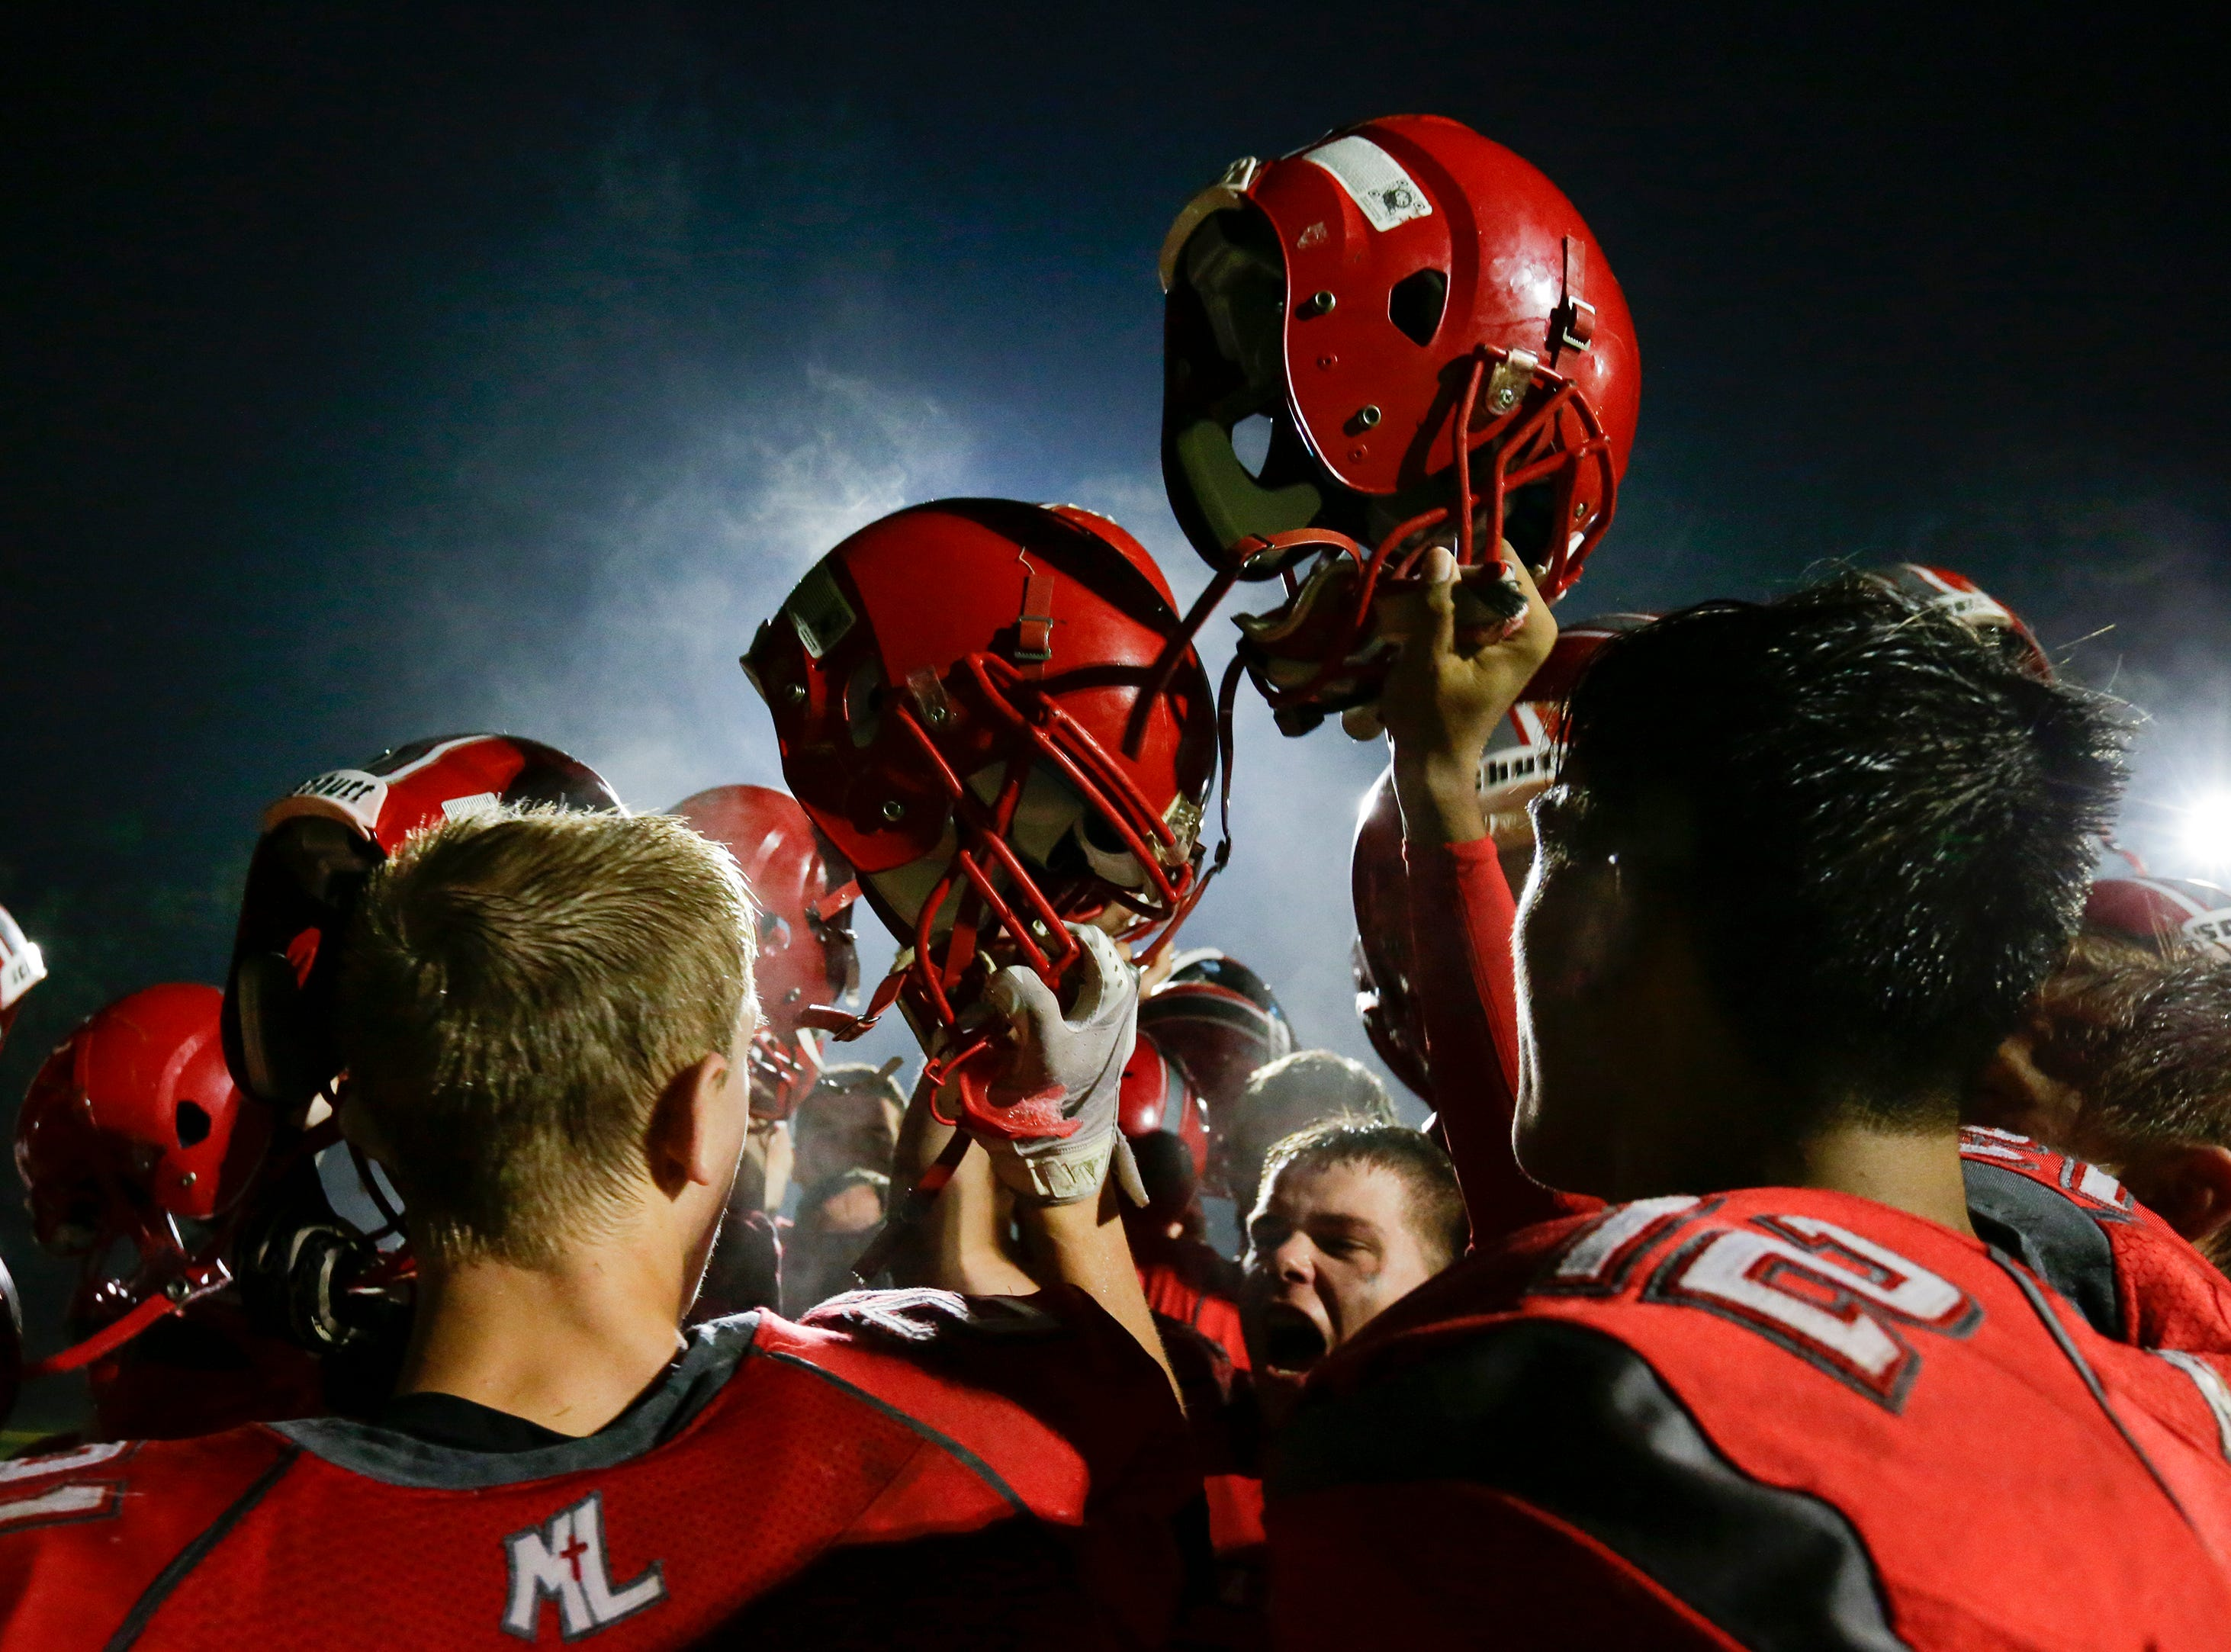 Lutheran raises their helmets and sings the school song after defeating Oostburg in a Big East conference matchup 27-7 at Manitowoc Lutheran High School Friday, September 14, 2018, in Manitowoc, Wis. Josh Clark/USA TODAY NETWORK-Wisconsin